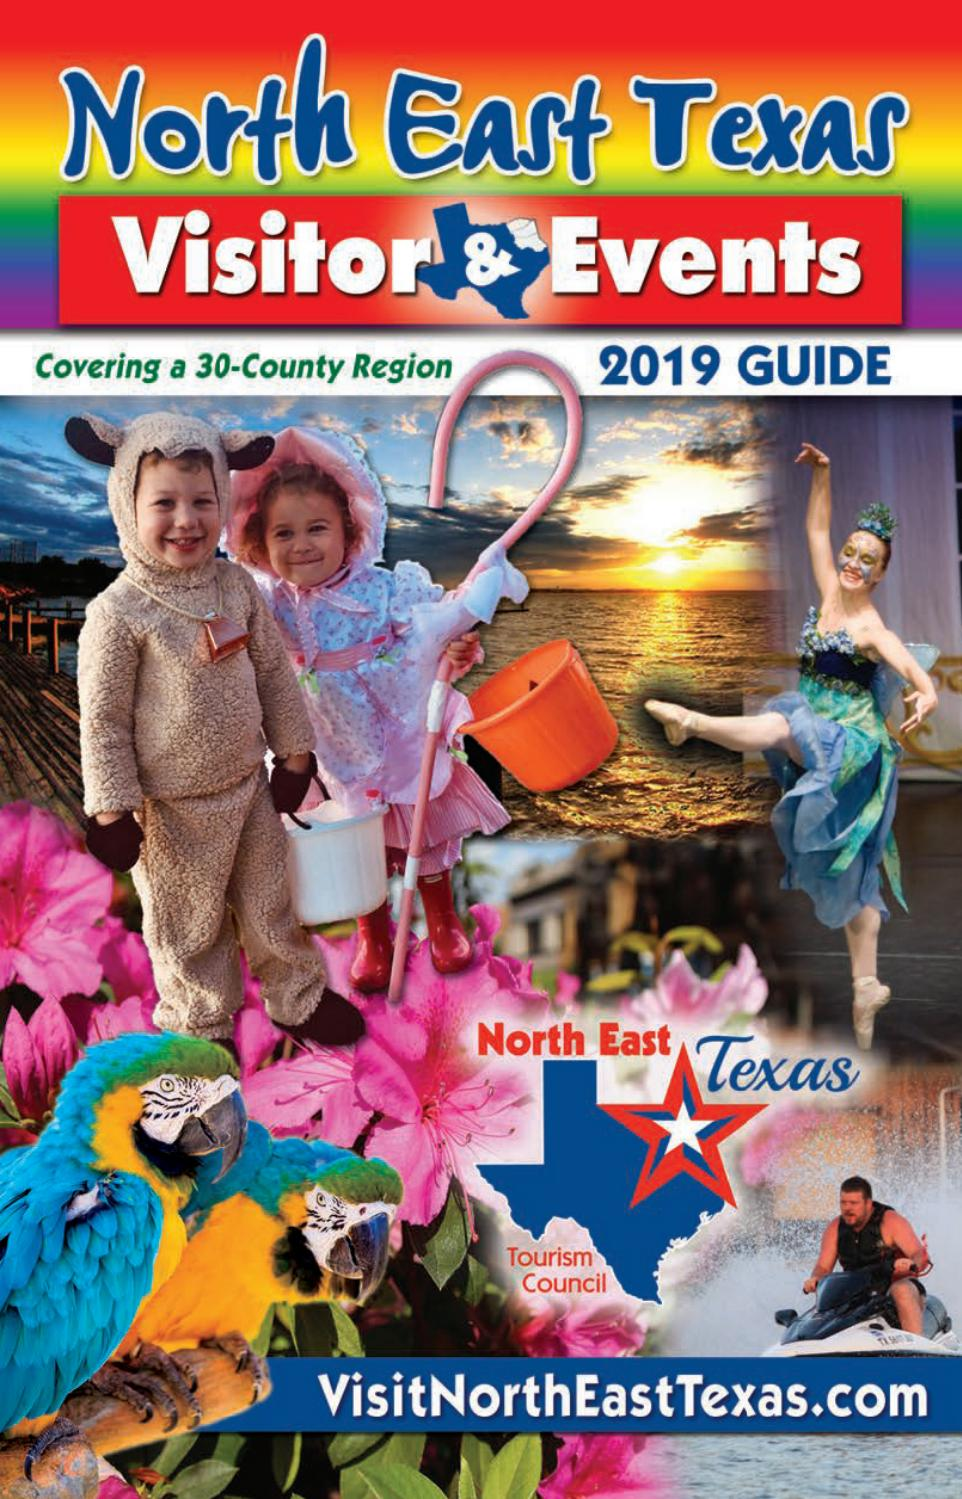 North East Texas Visitor & Events Guide 2019 by Richardson